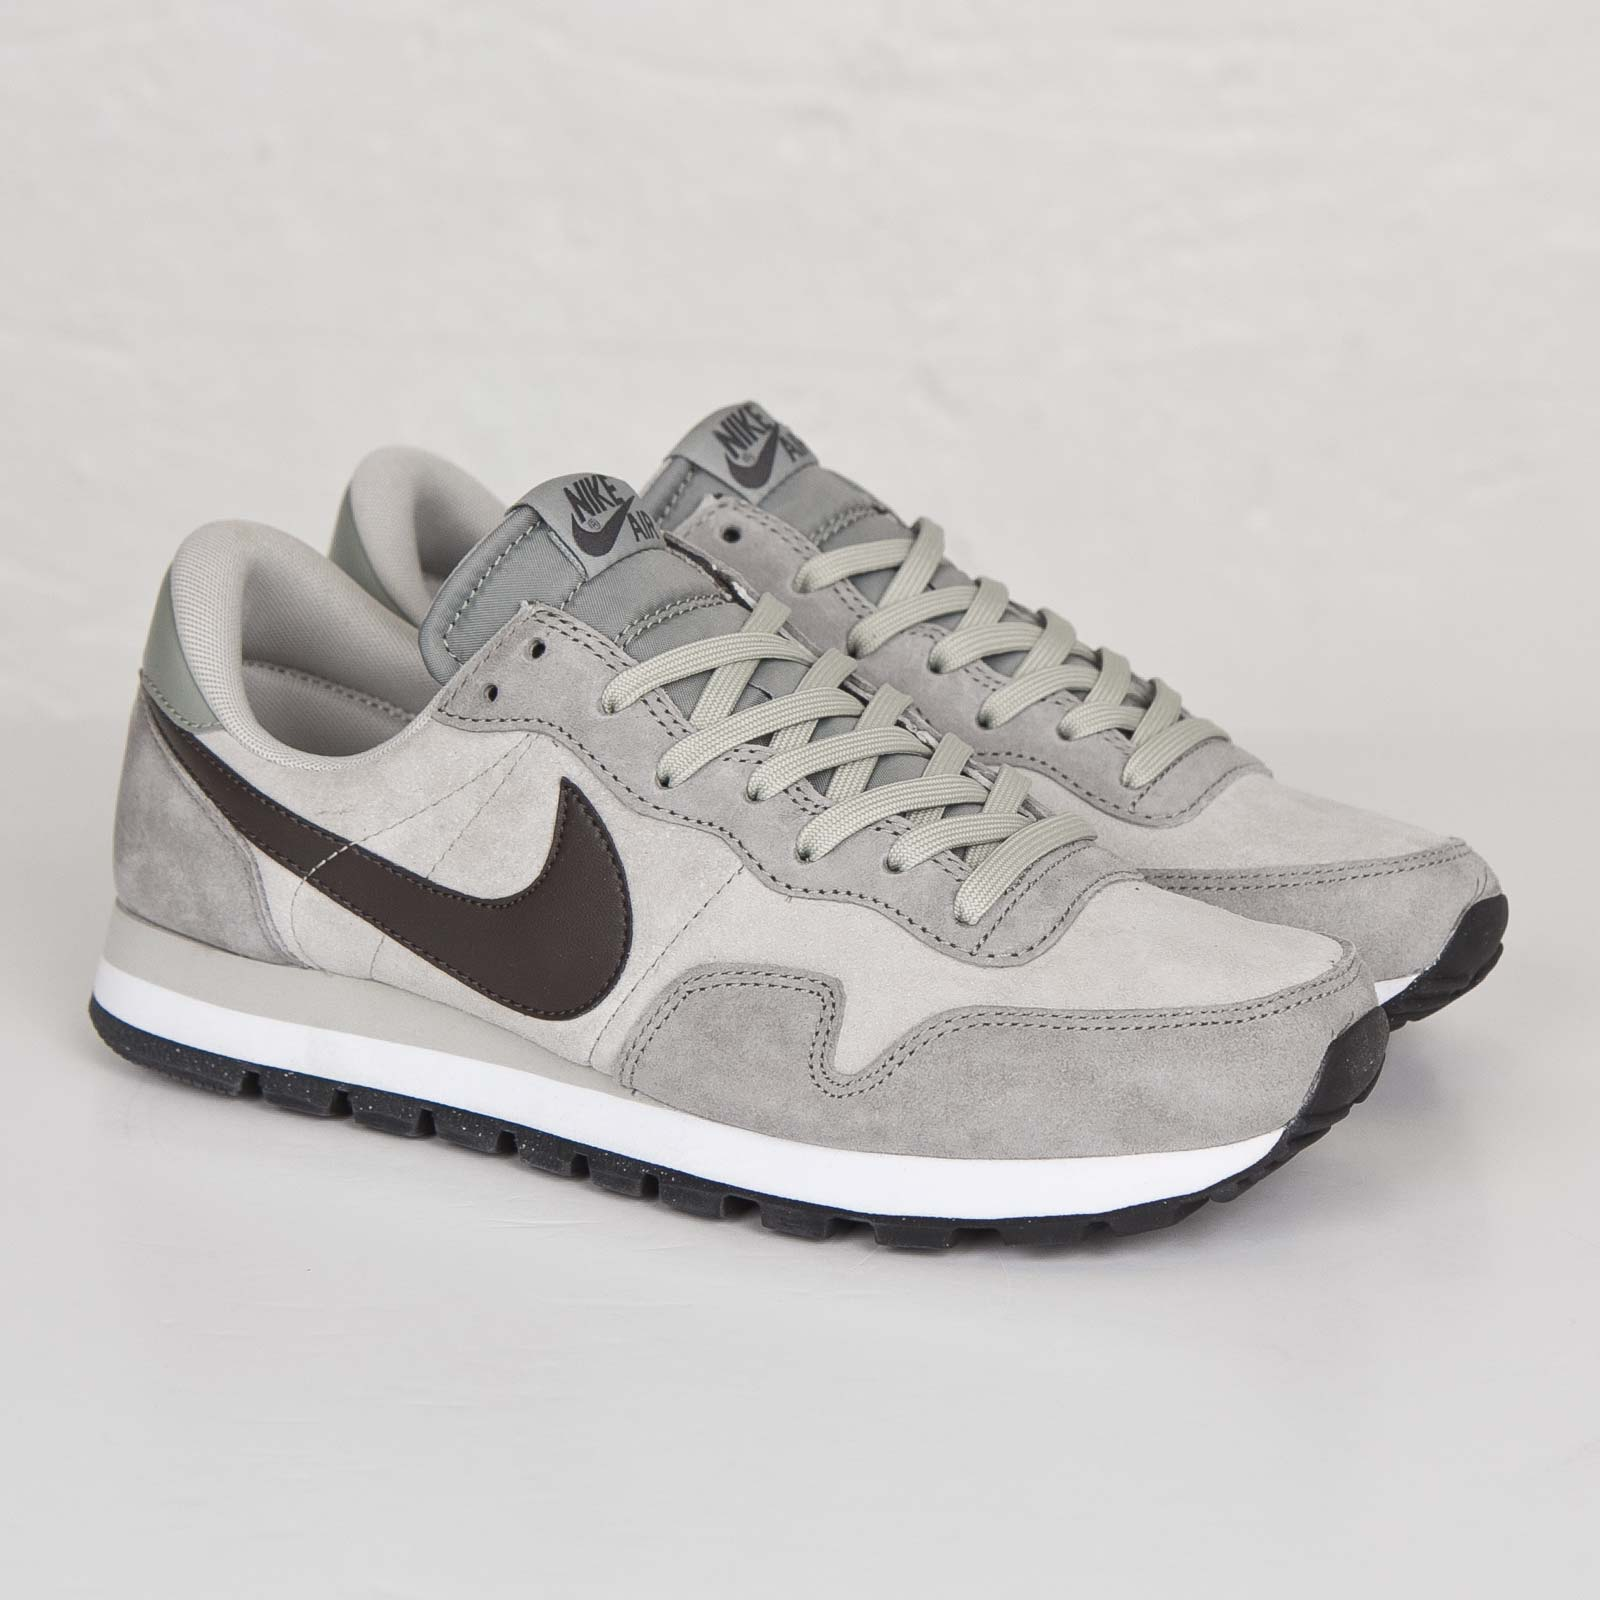 Nike Air Pegasus 83 Leather 616324 013 Sneakersnstuff